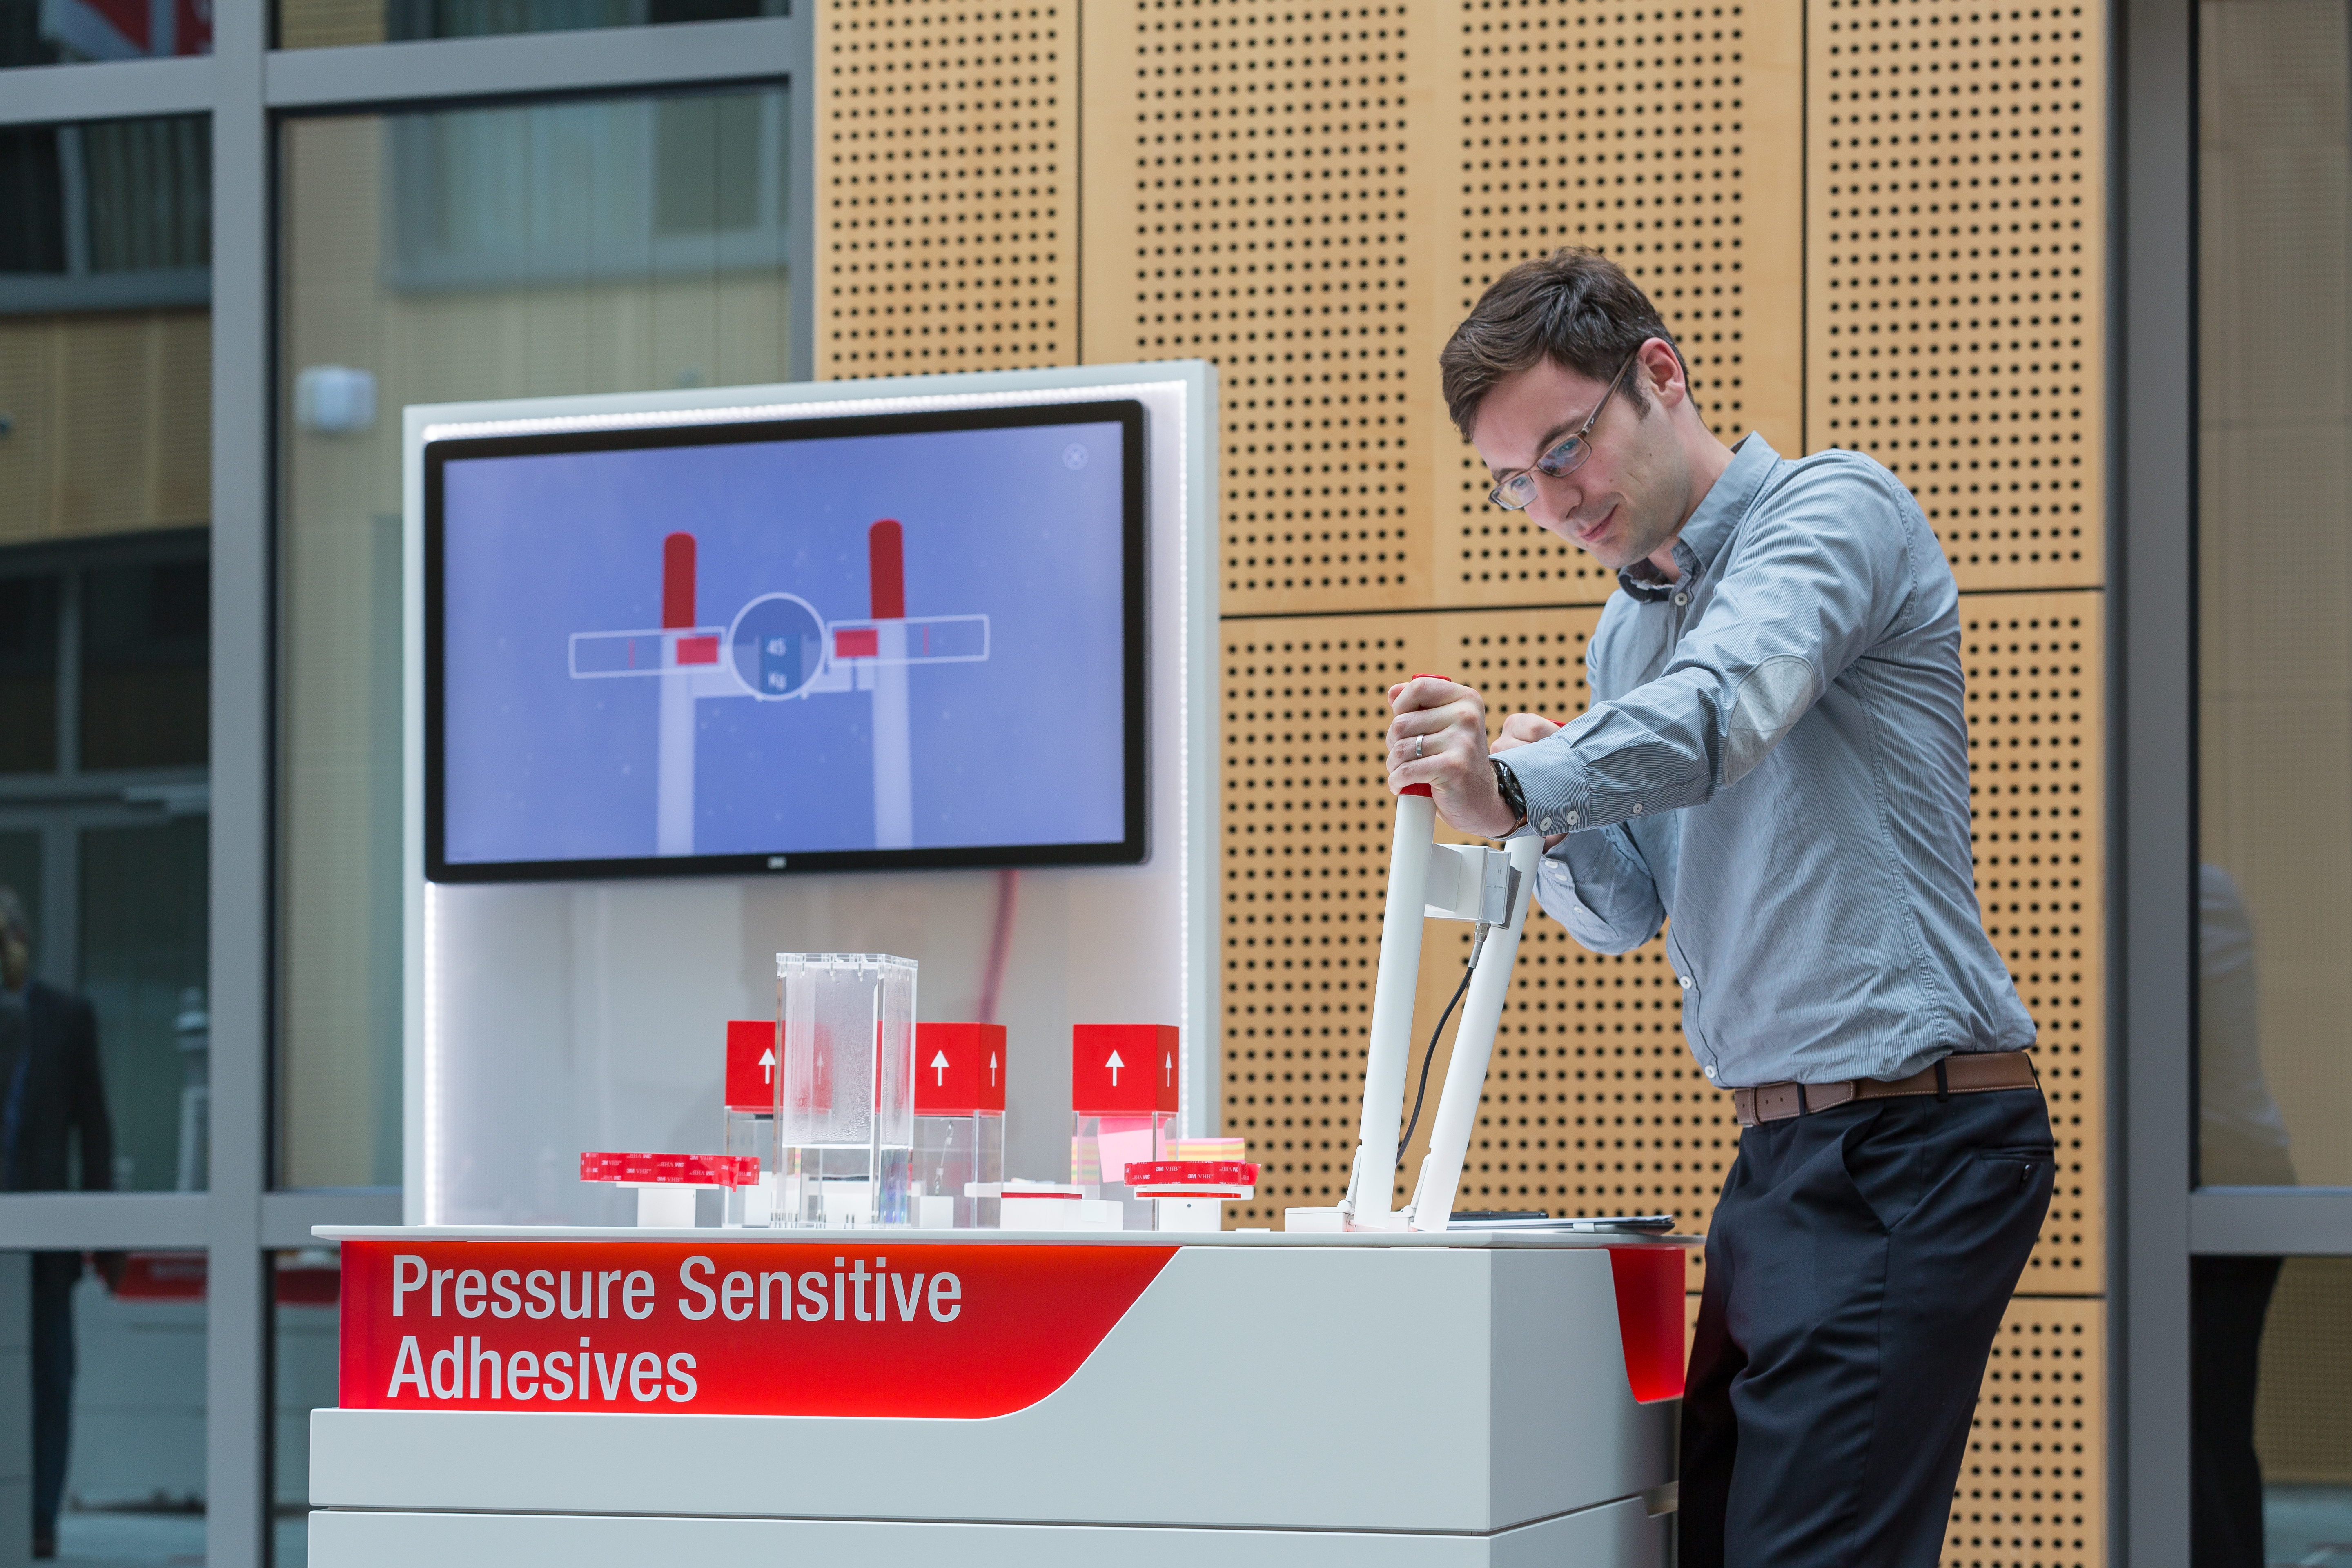 Visitor tests pressuresensitive adhesives